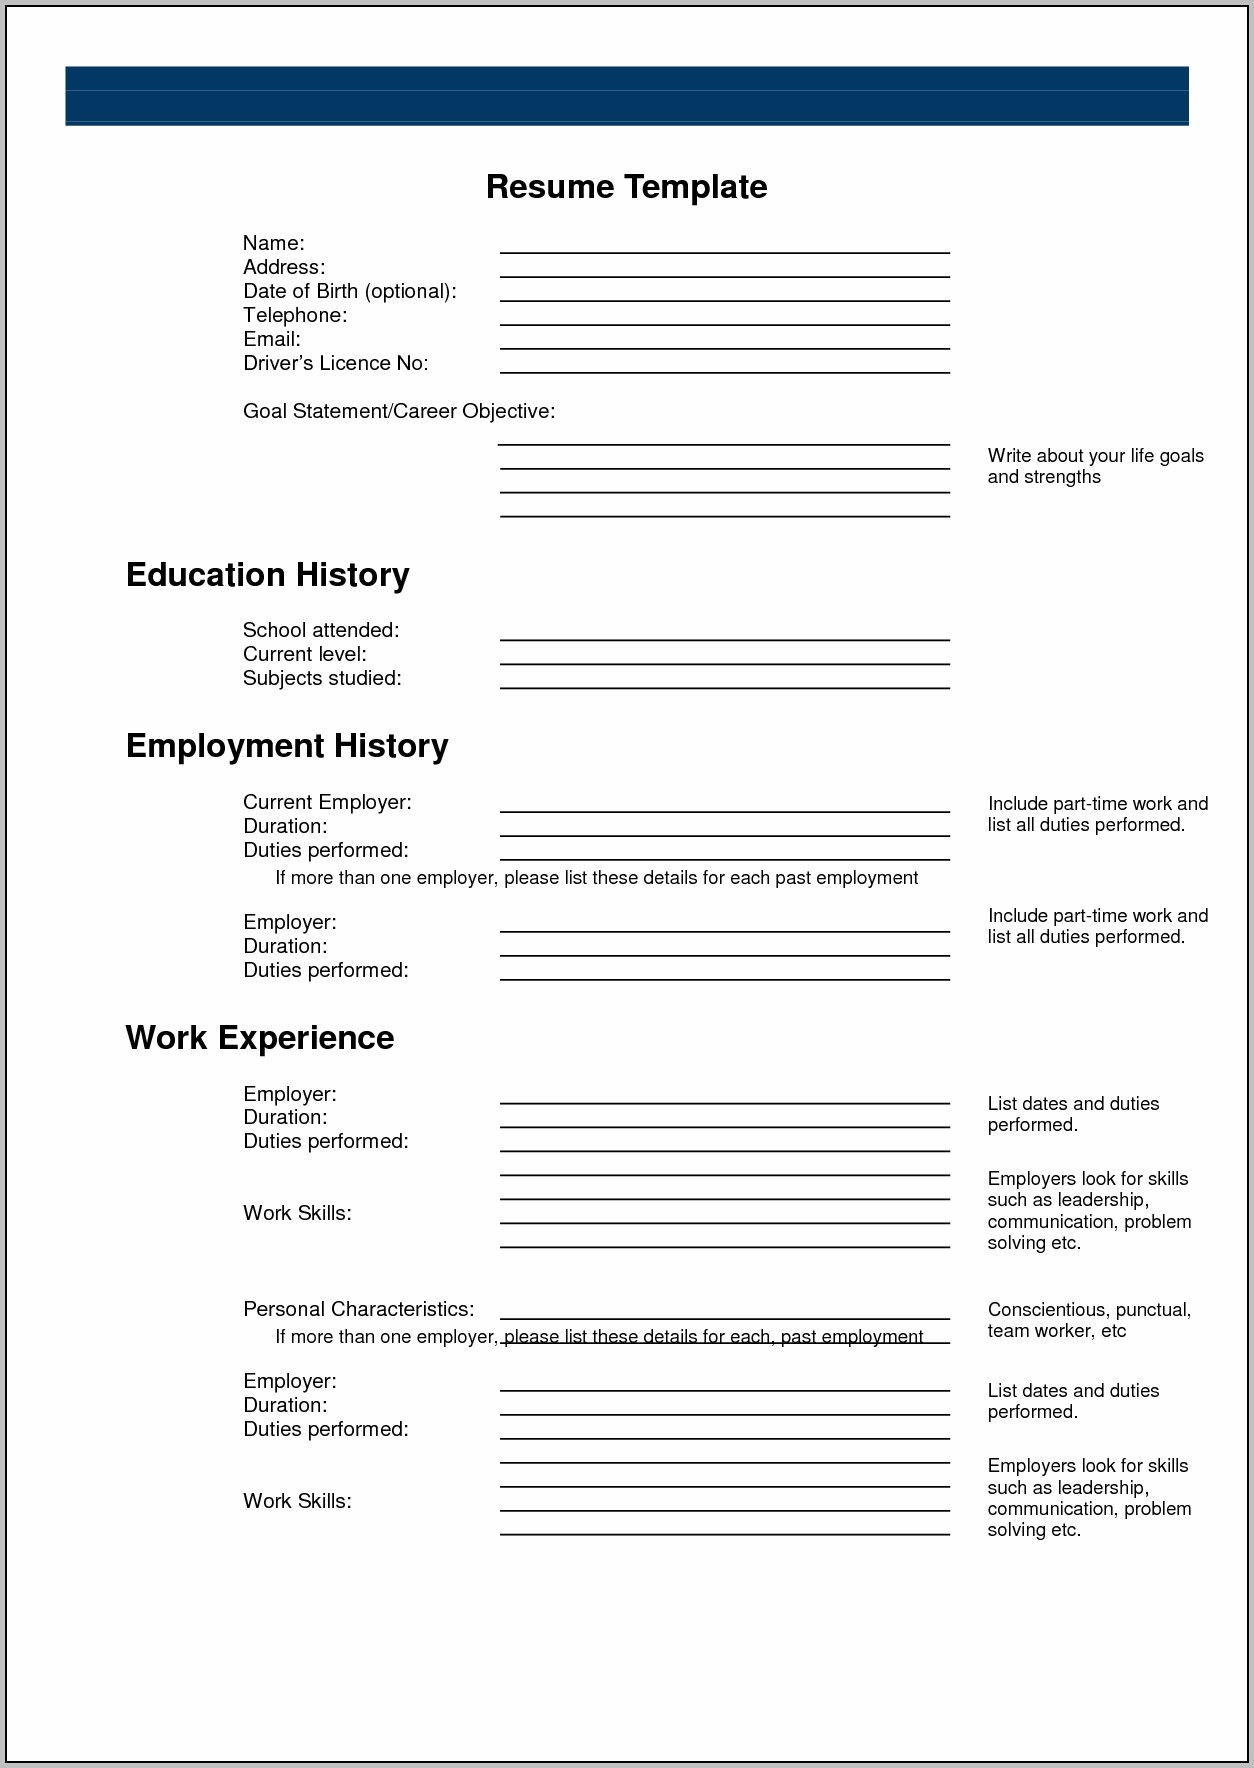 Free Blank Resume Forms Printable